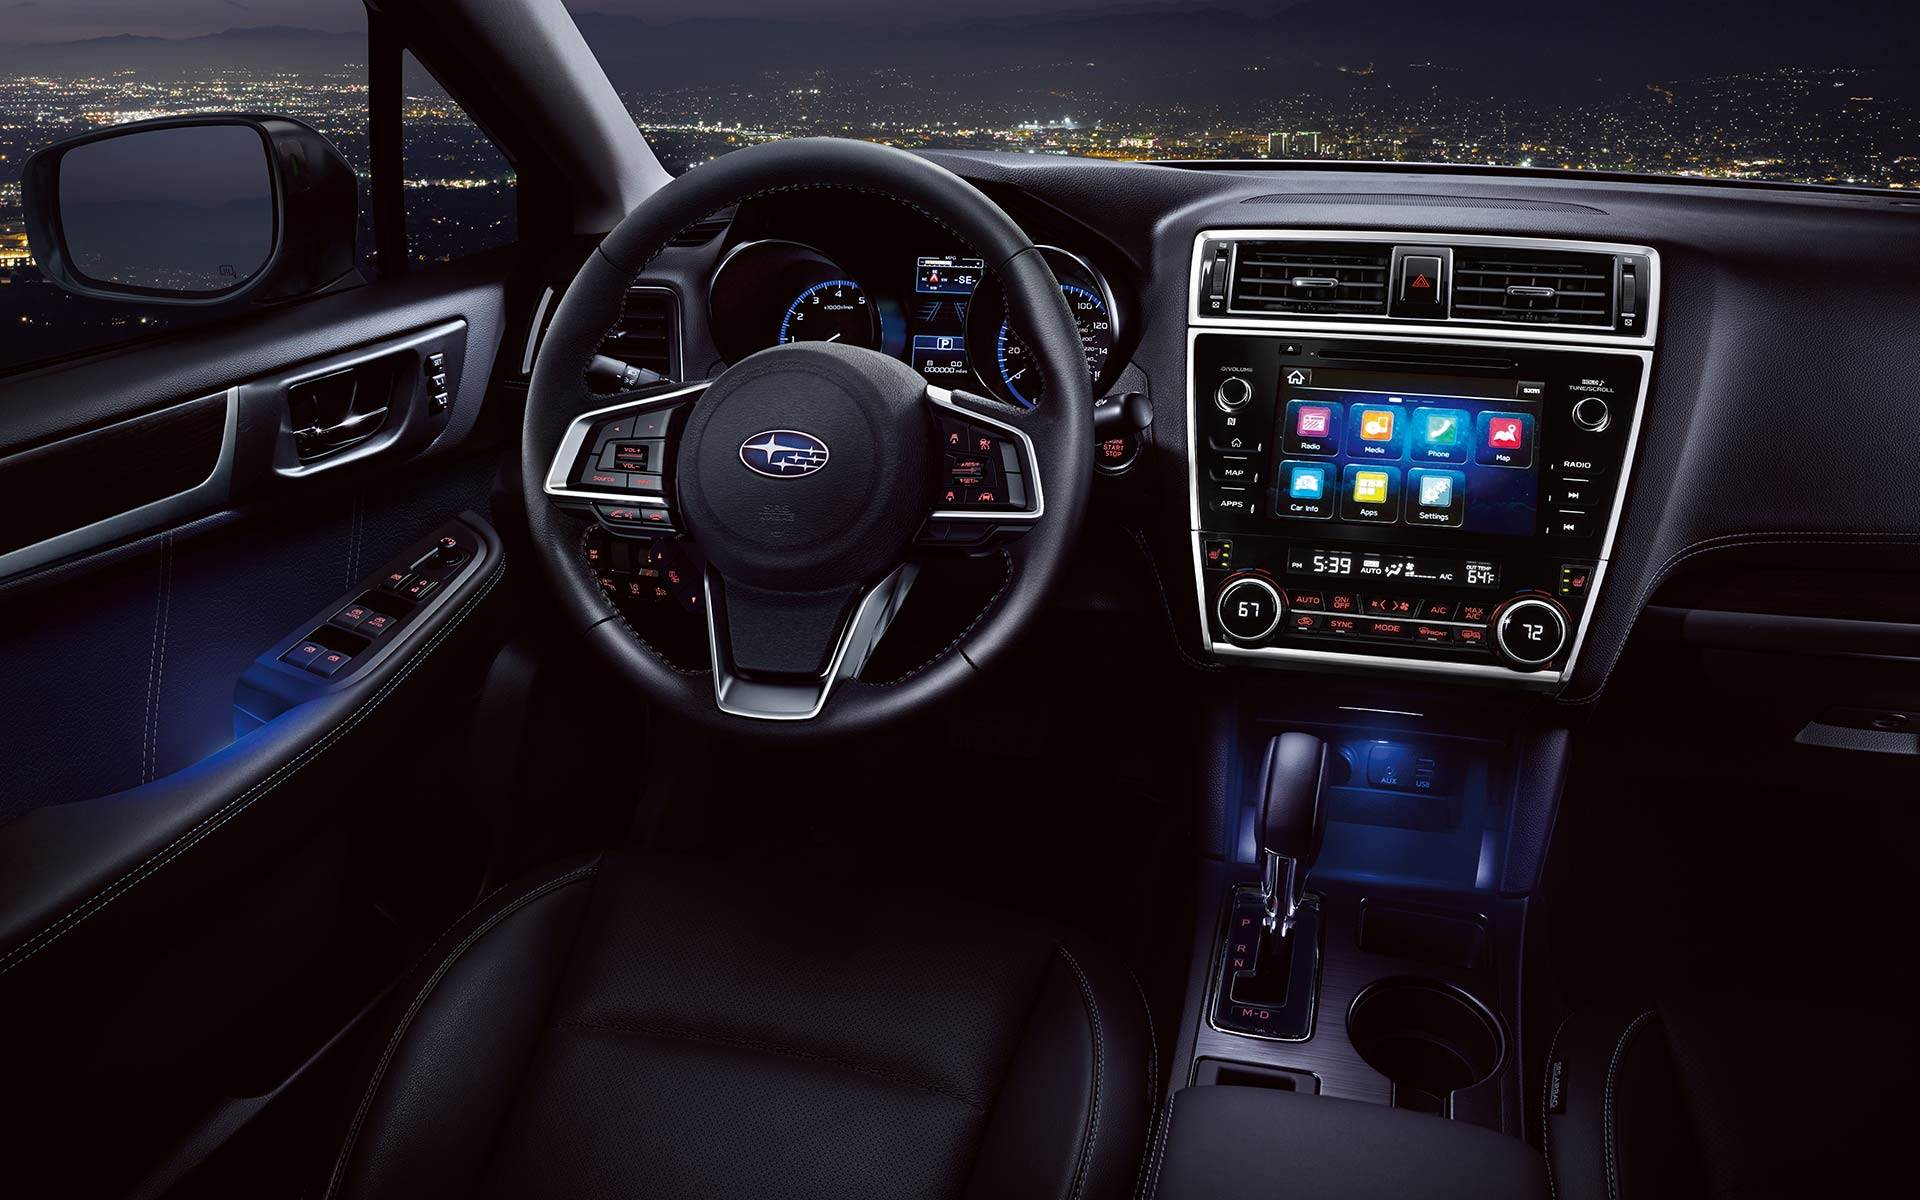 2018 subaru legacy vs 2018 ford fusion comparison review by east hills subaru roslyn ny. Black Bedroom Furniture Sets. Home Design Ideas